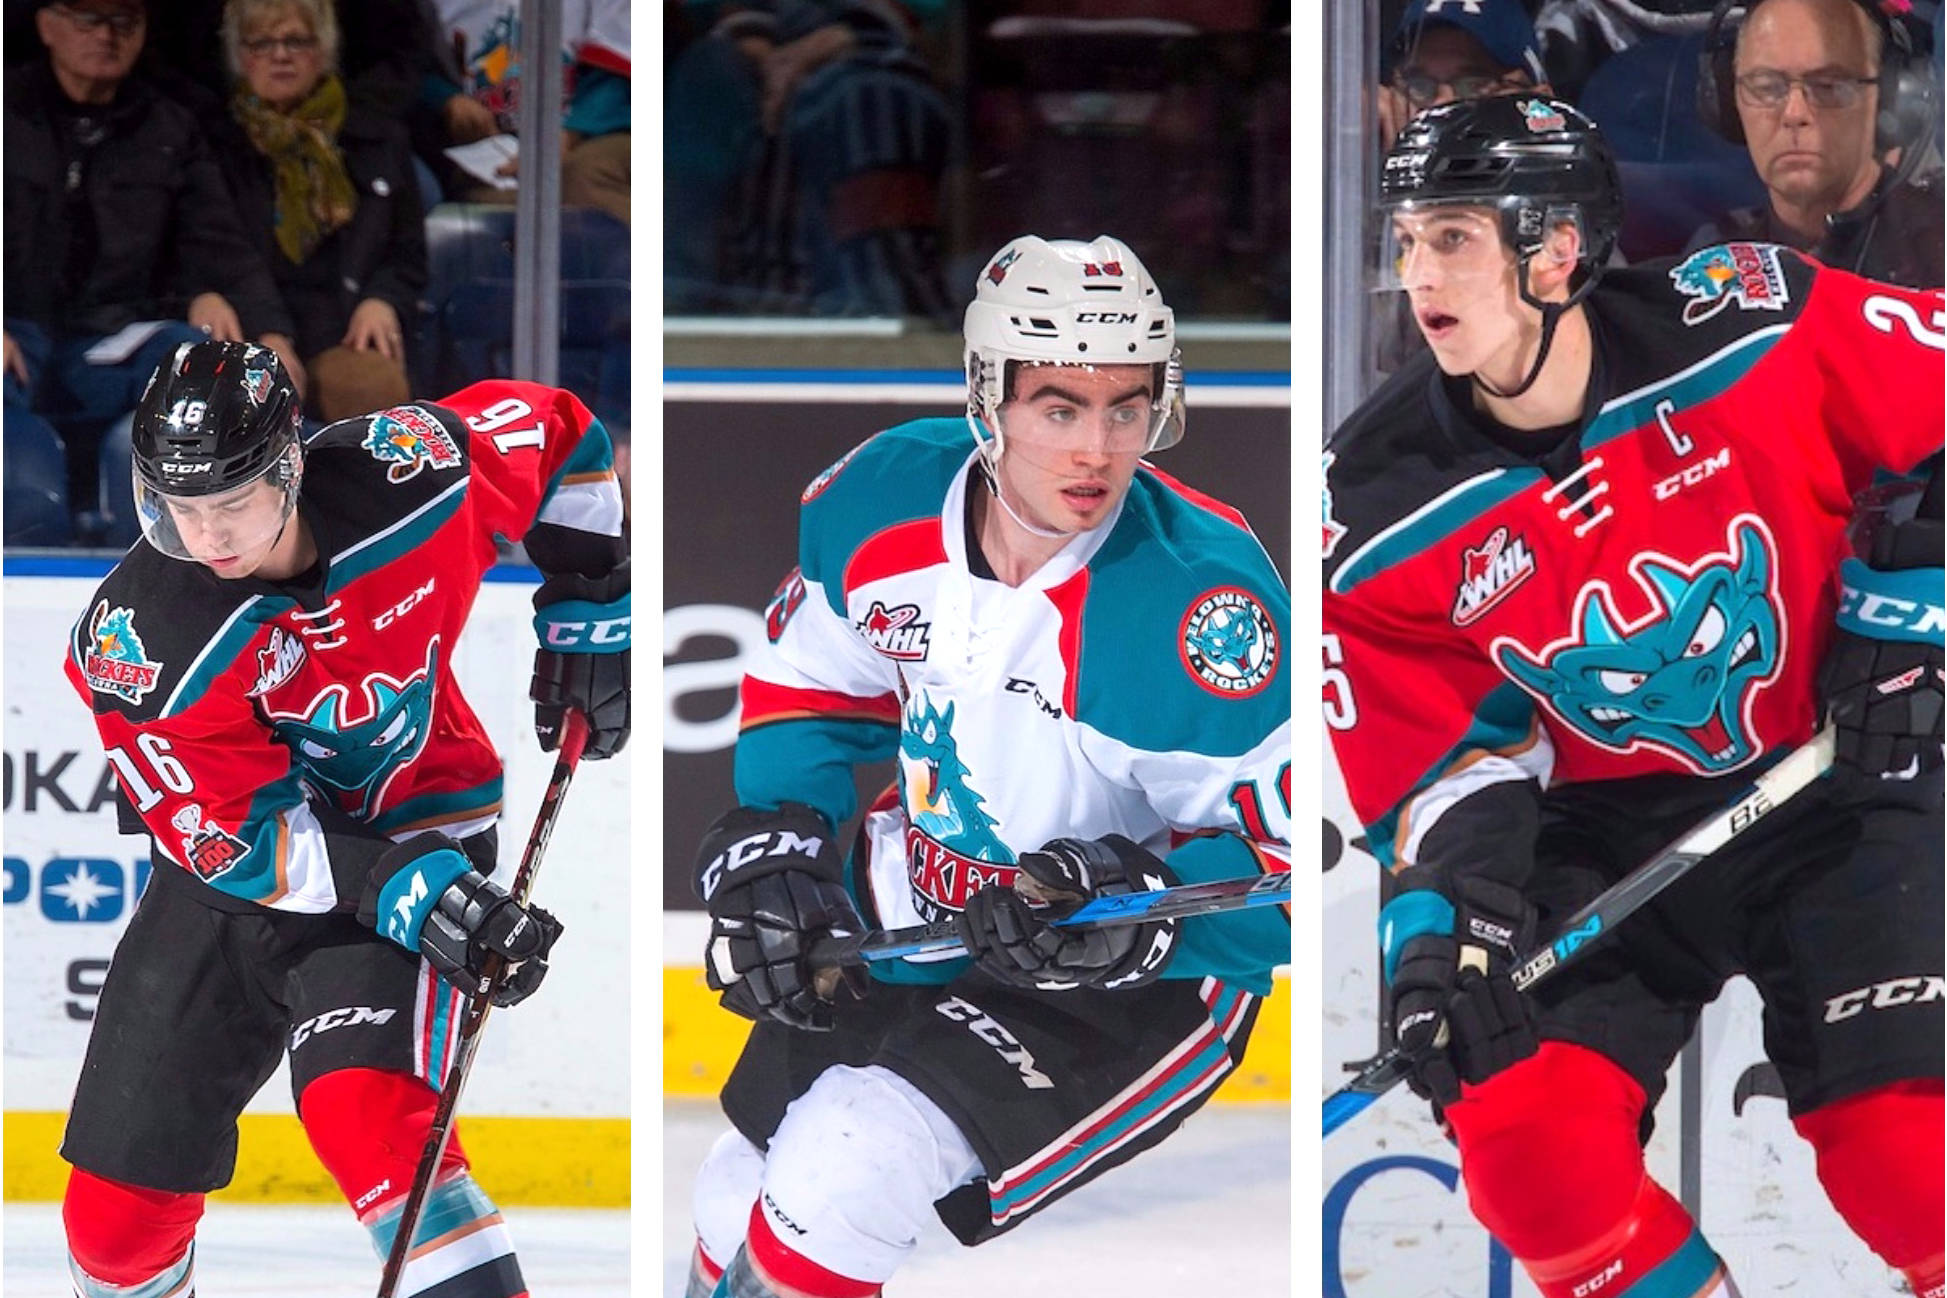 Kole Lind, Dillon Dube and Cal Foote will all be headed to St. Catharines, ON next week for the Canadian junior team's selection camp. (Marissa Baecker/Shoot The Breeze)